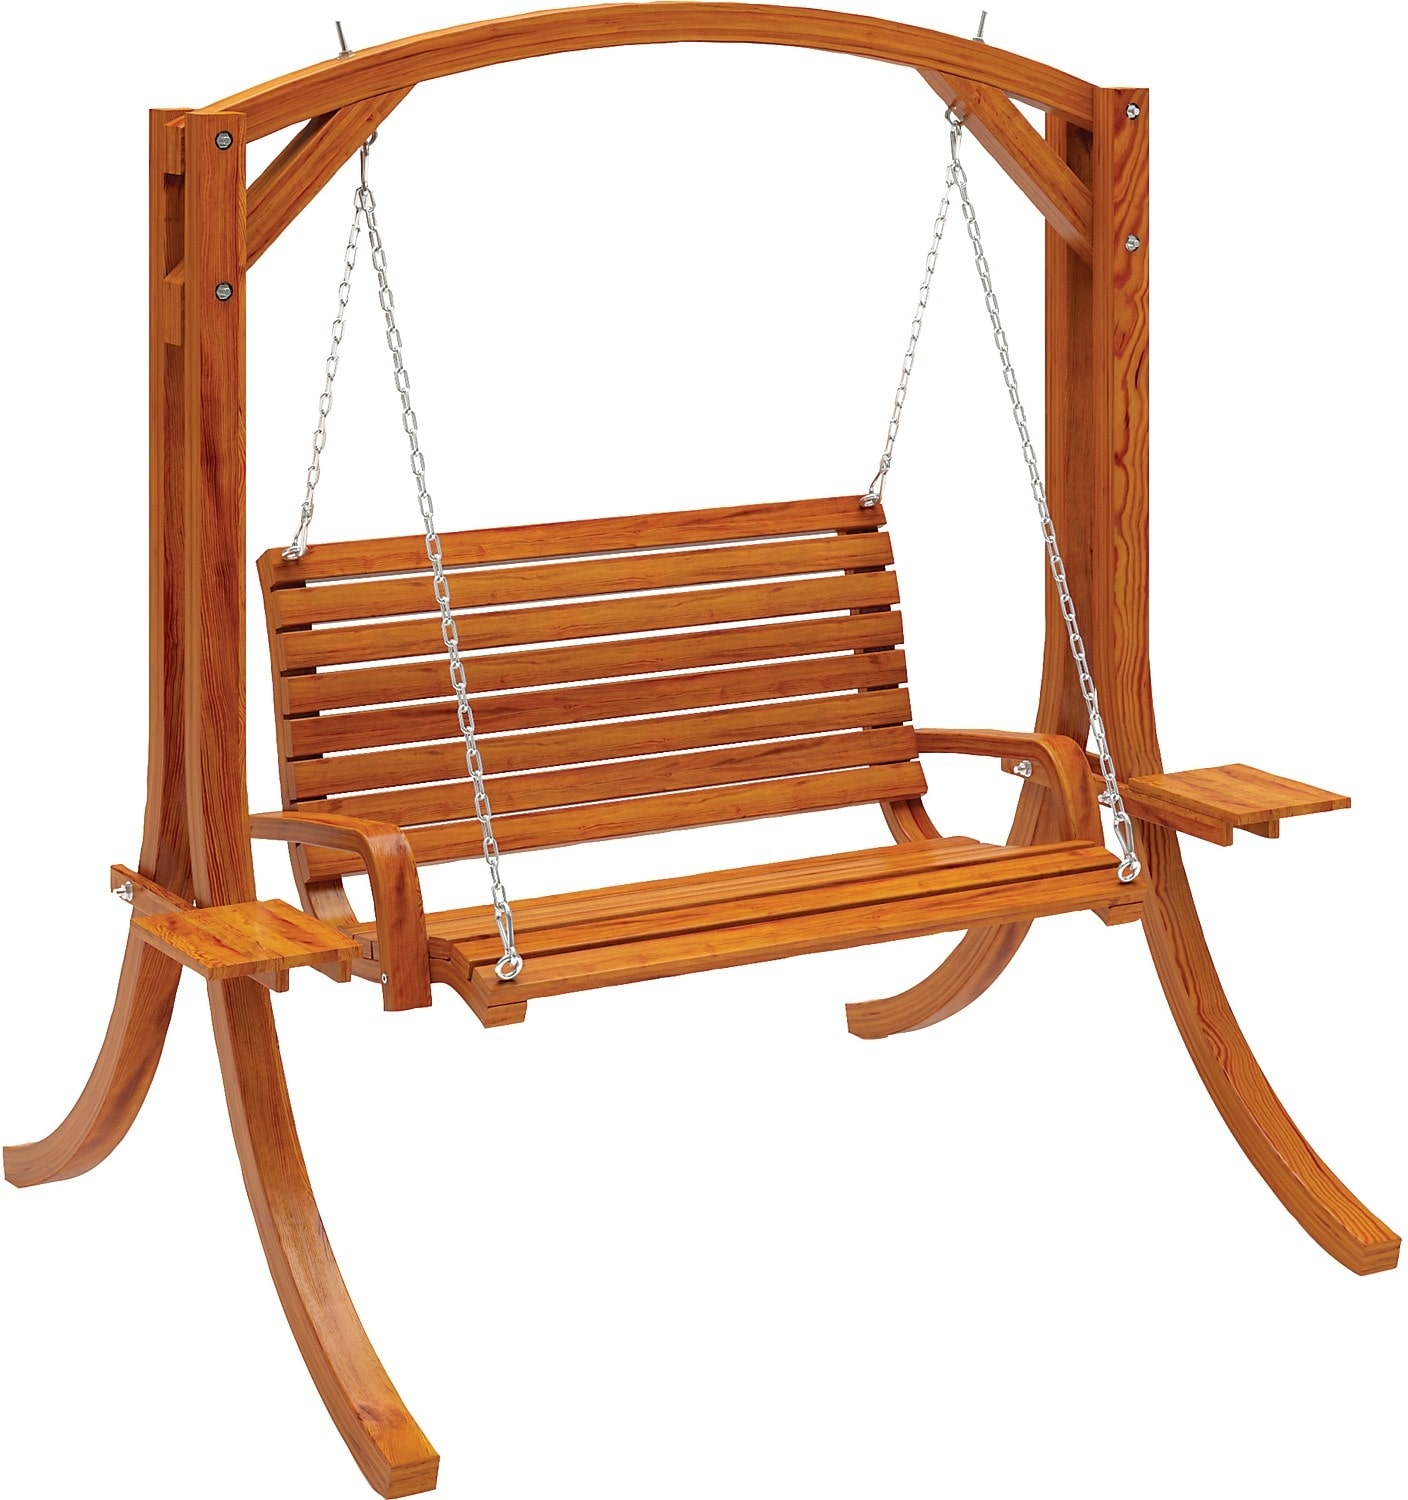 Outdoor Furniture - Wood Canyon Patio Swing